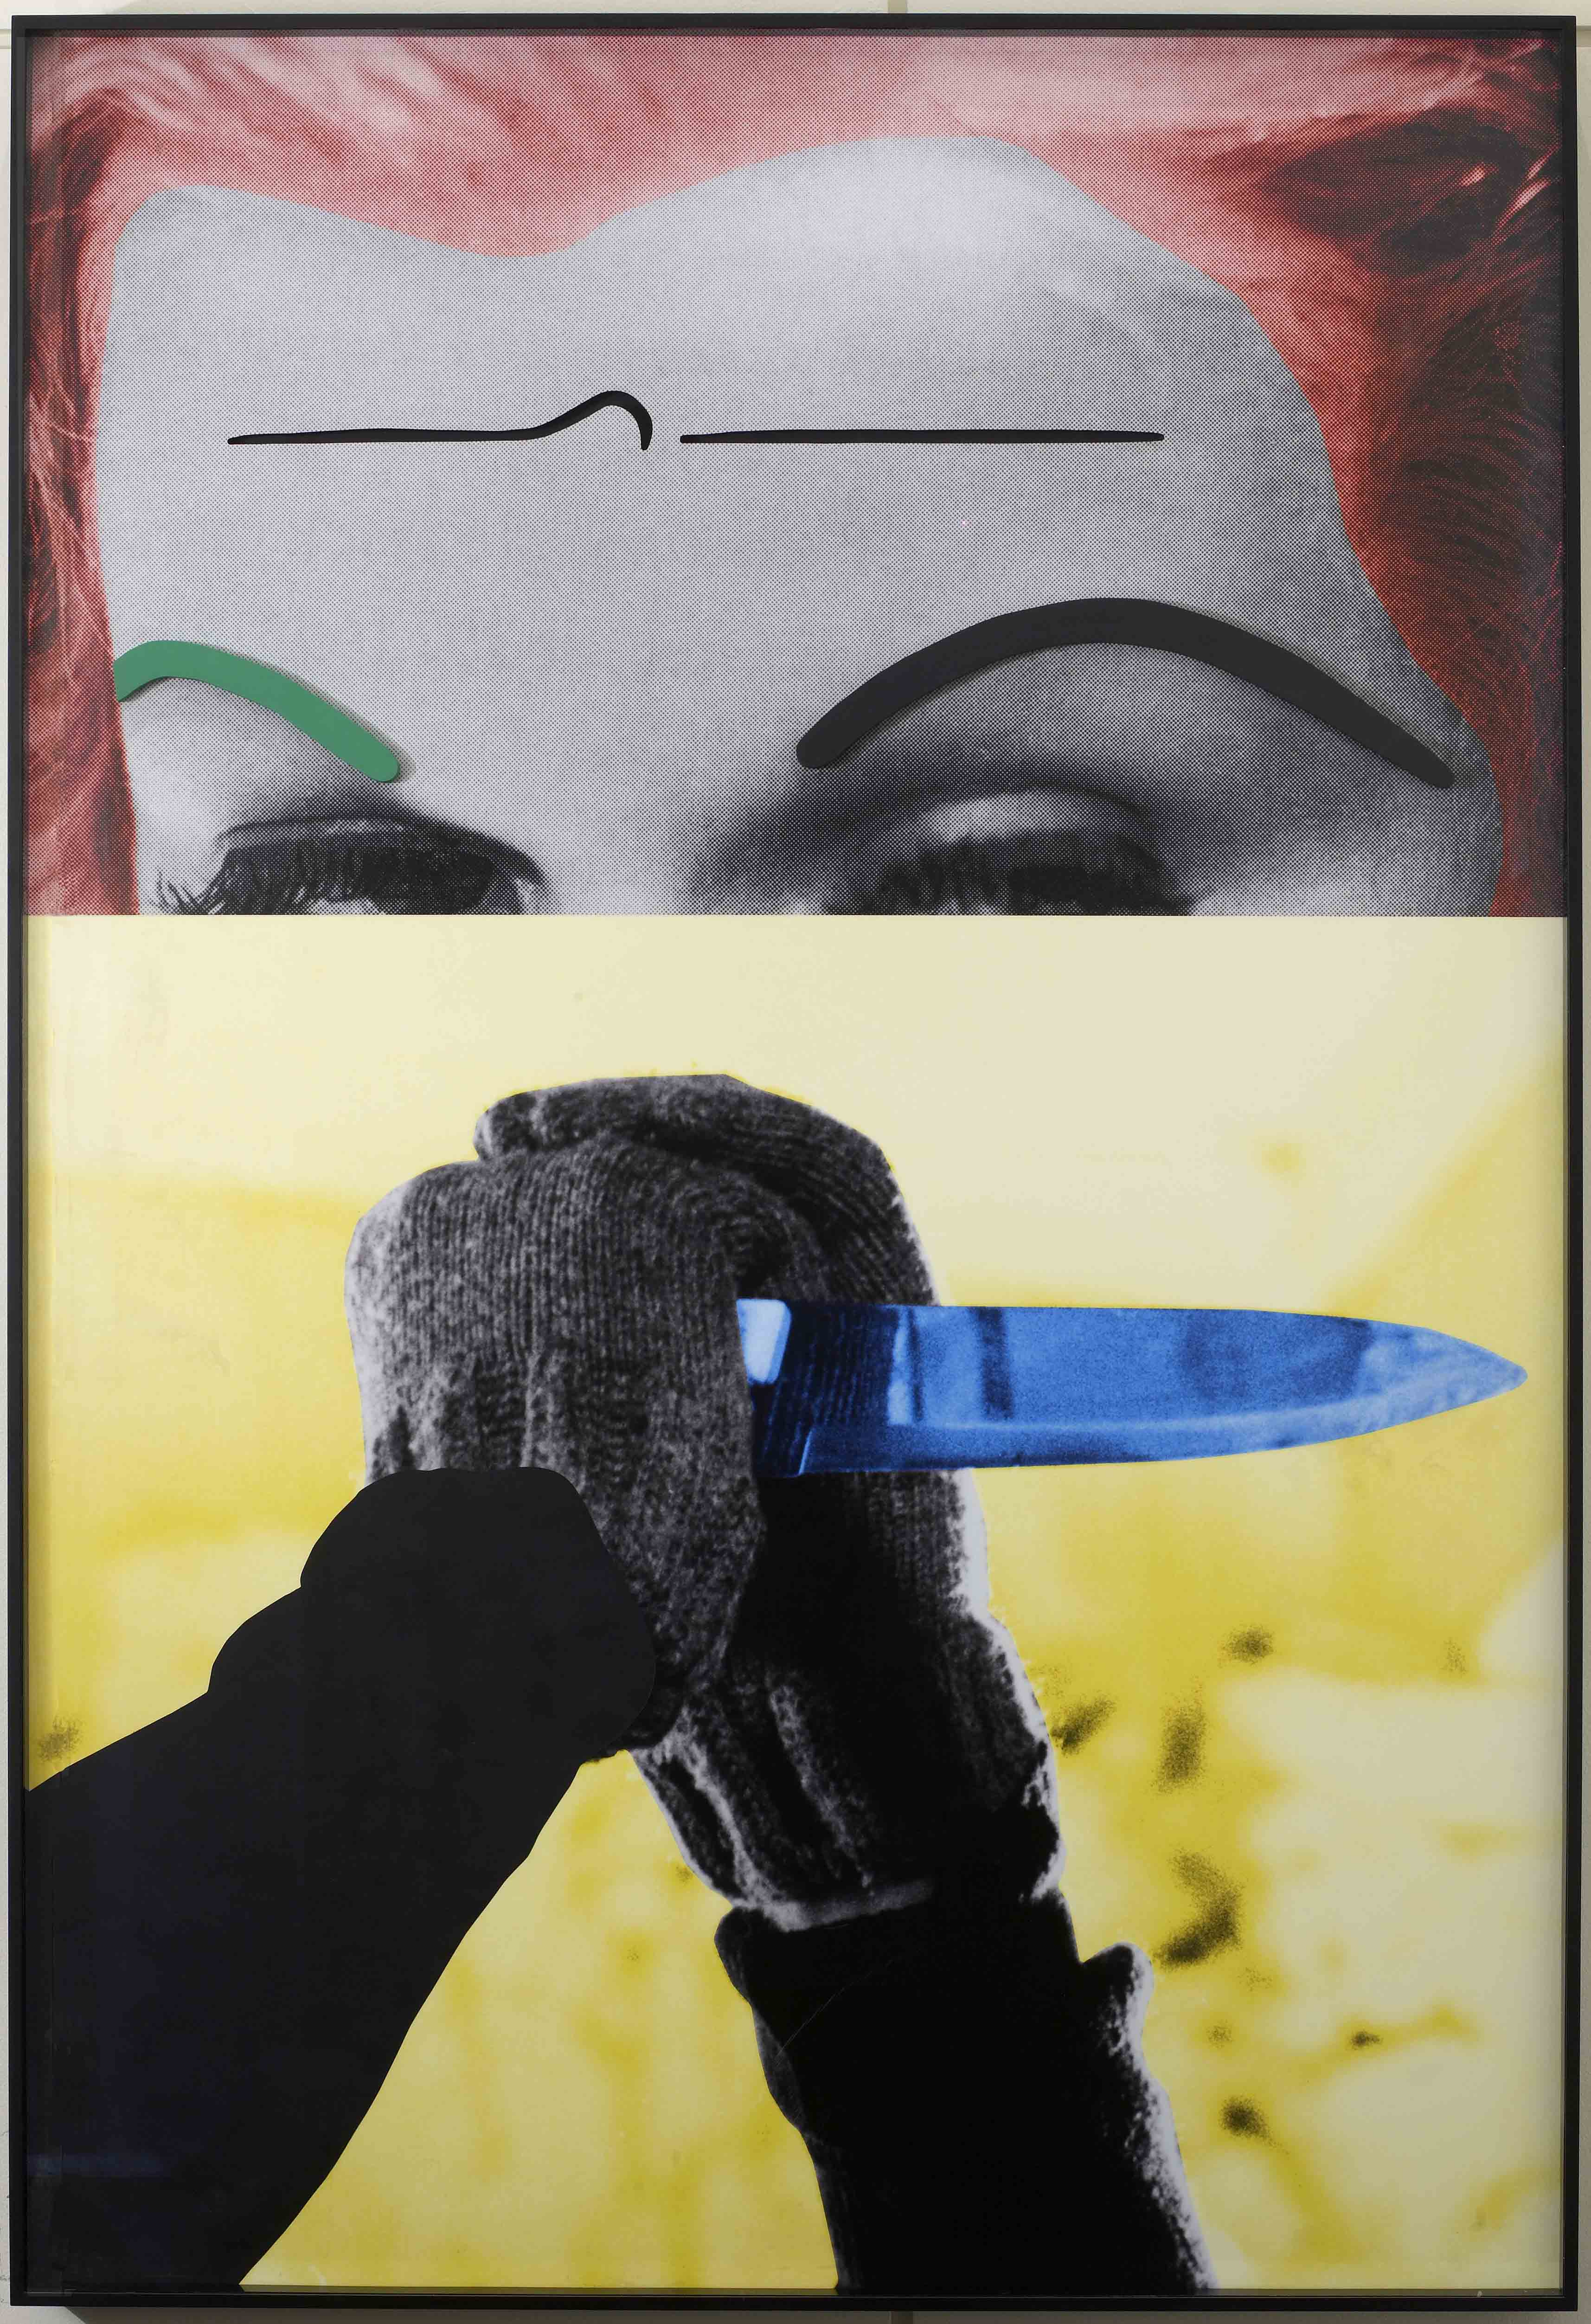 Raised Eyebrows Furrowed Foreheads Knife (With Hands), John Baldessari  (2009)